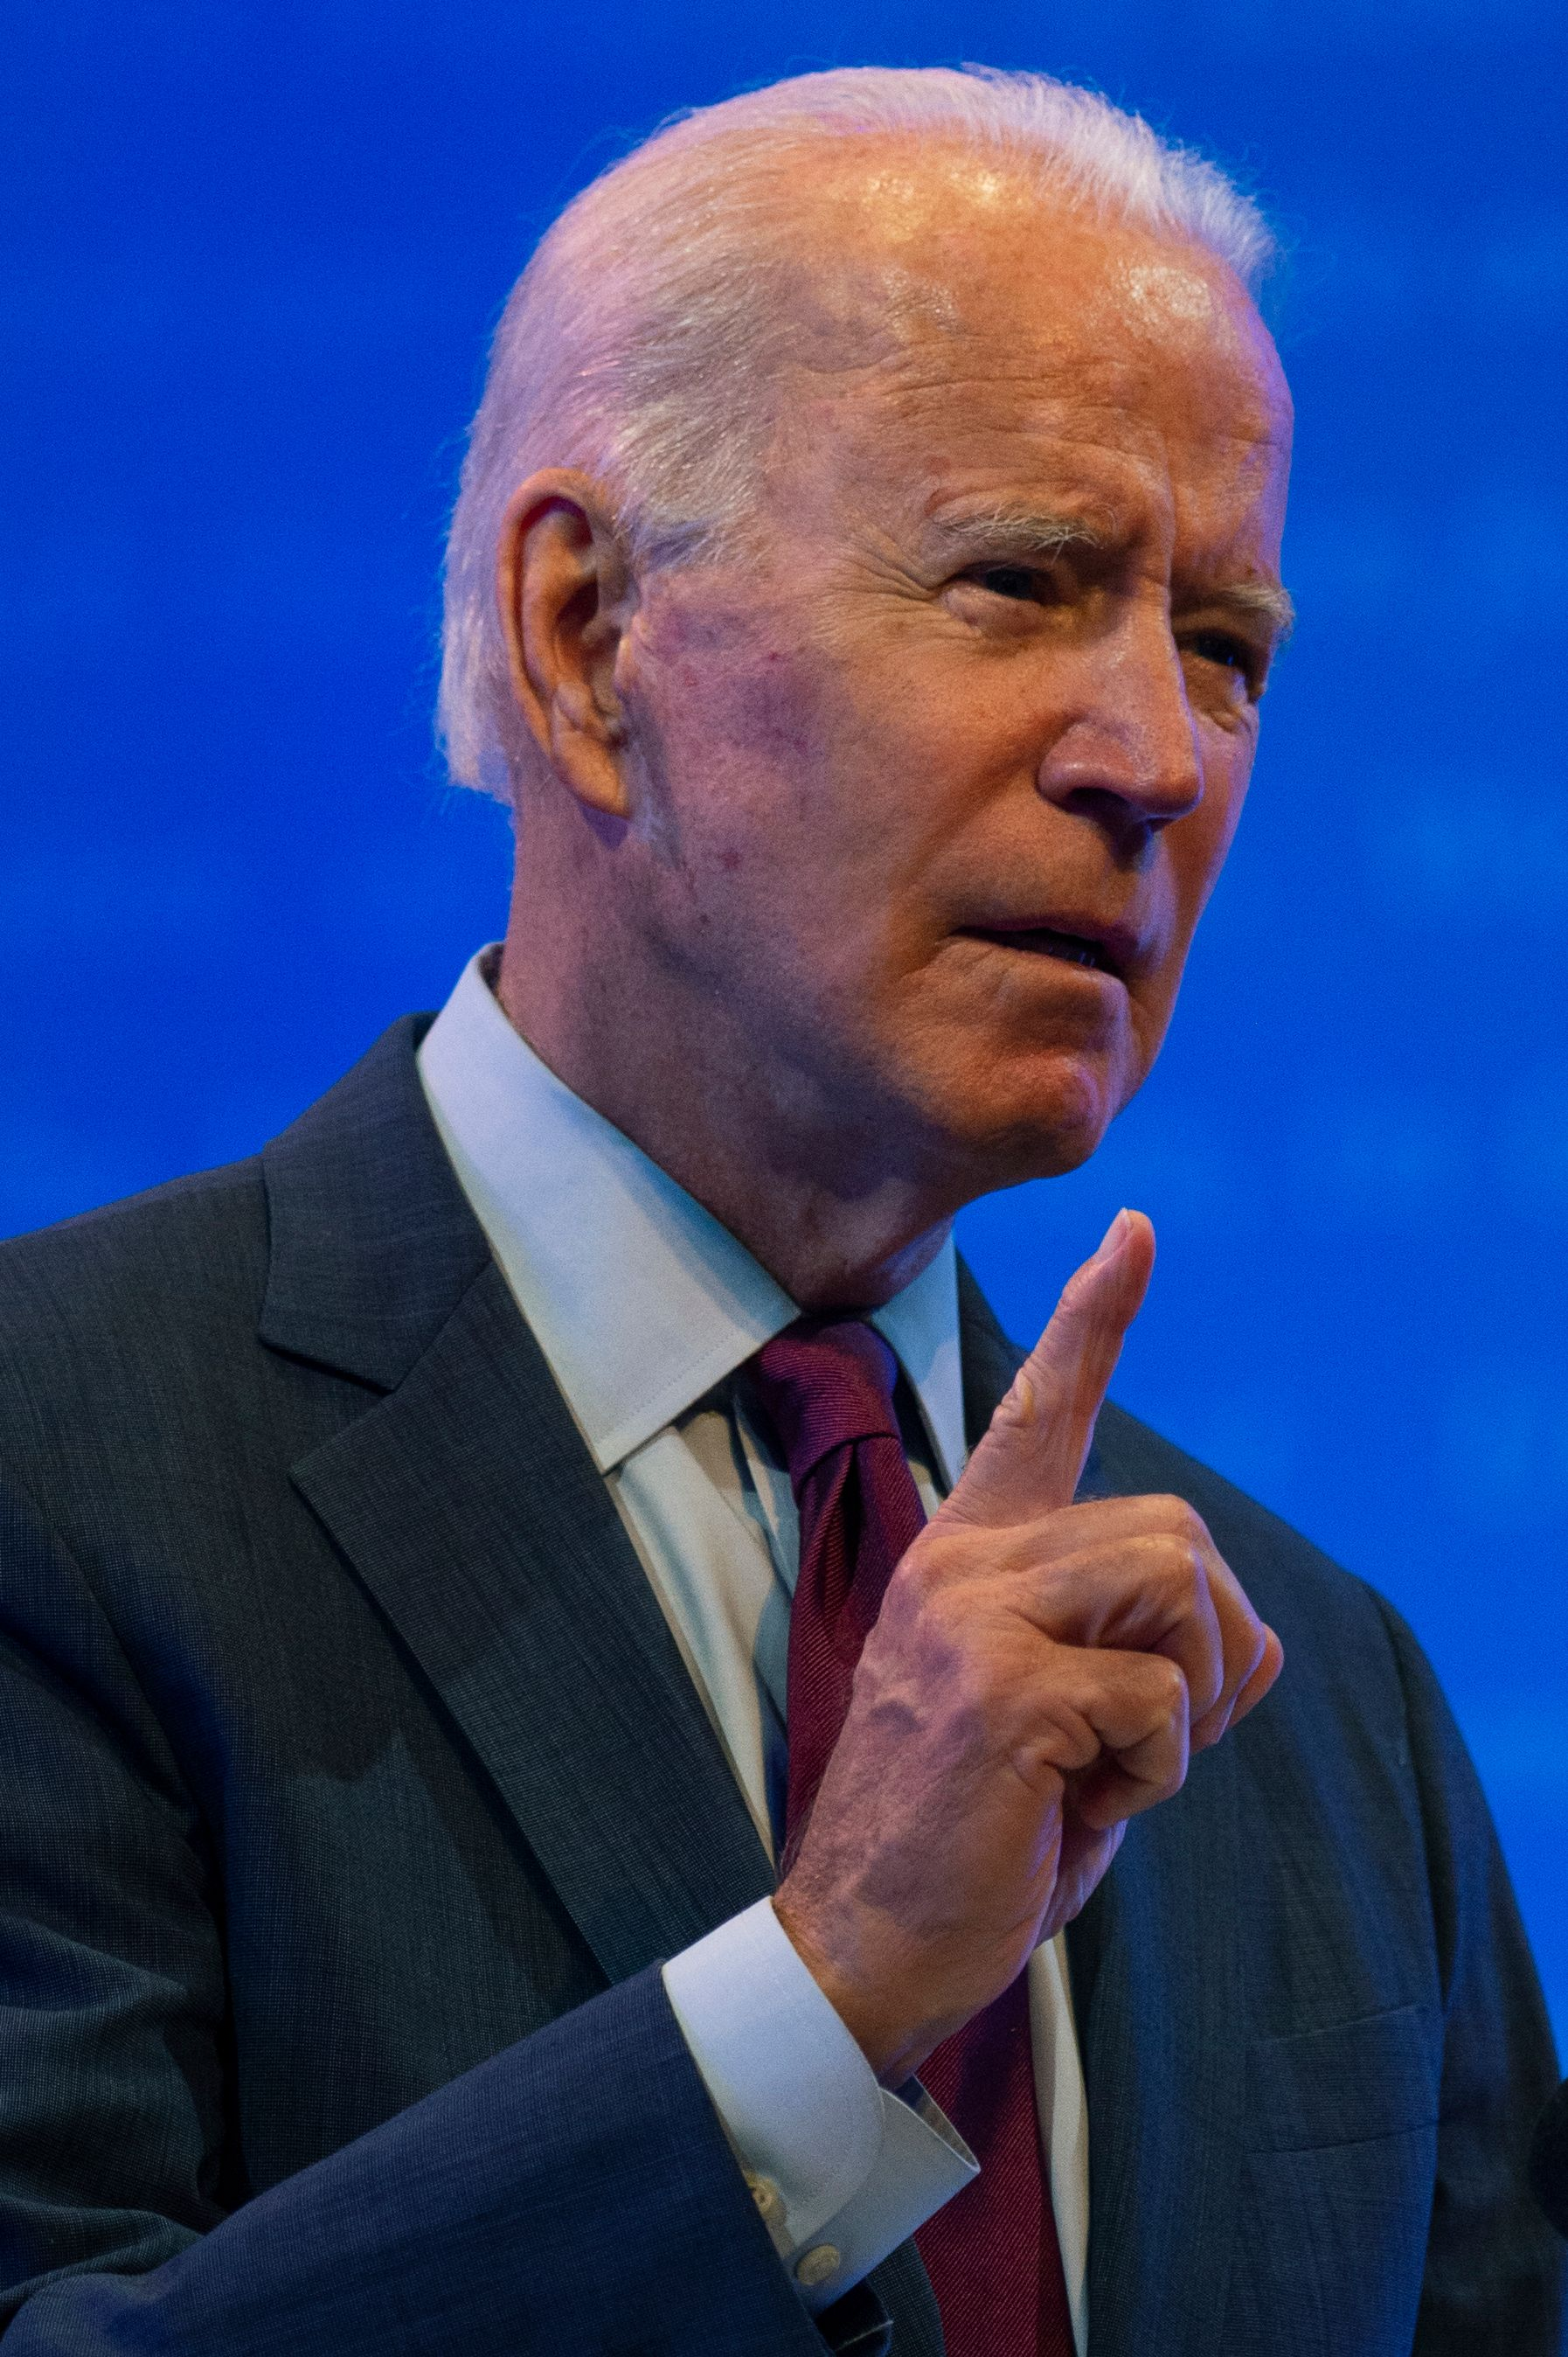 Democratic presidential nominee and former Vice President Joe Biden delivers a speech at a local theater in Wilmington, Delaware on September 27, 2020.